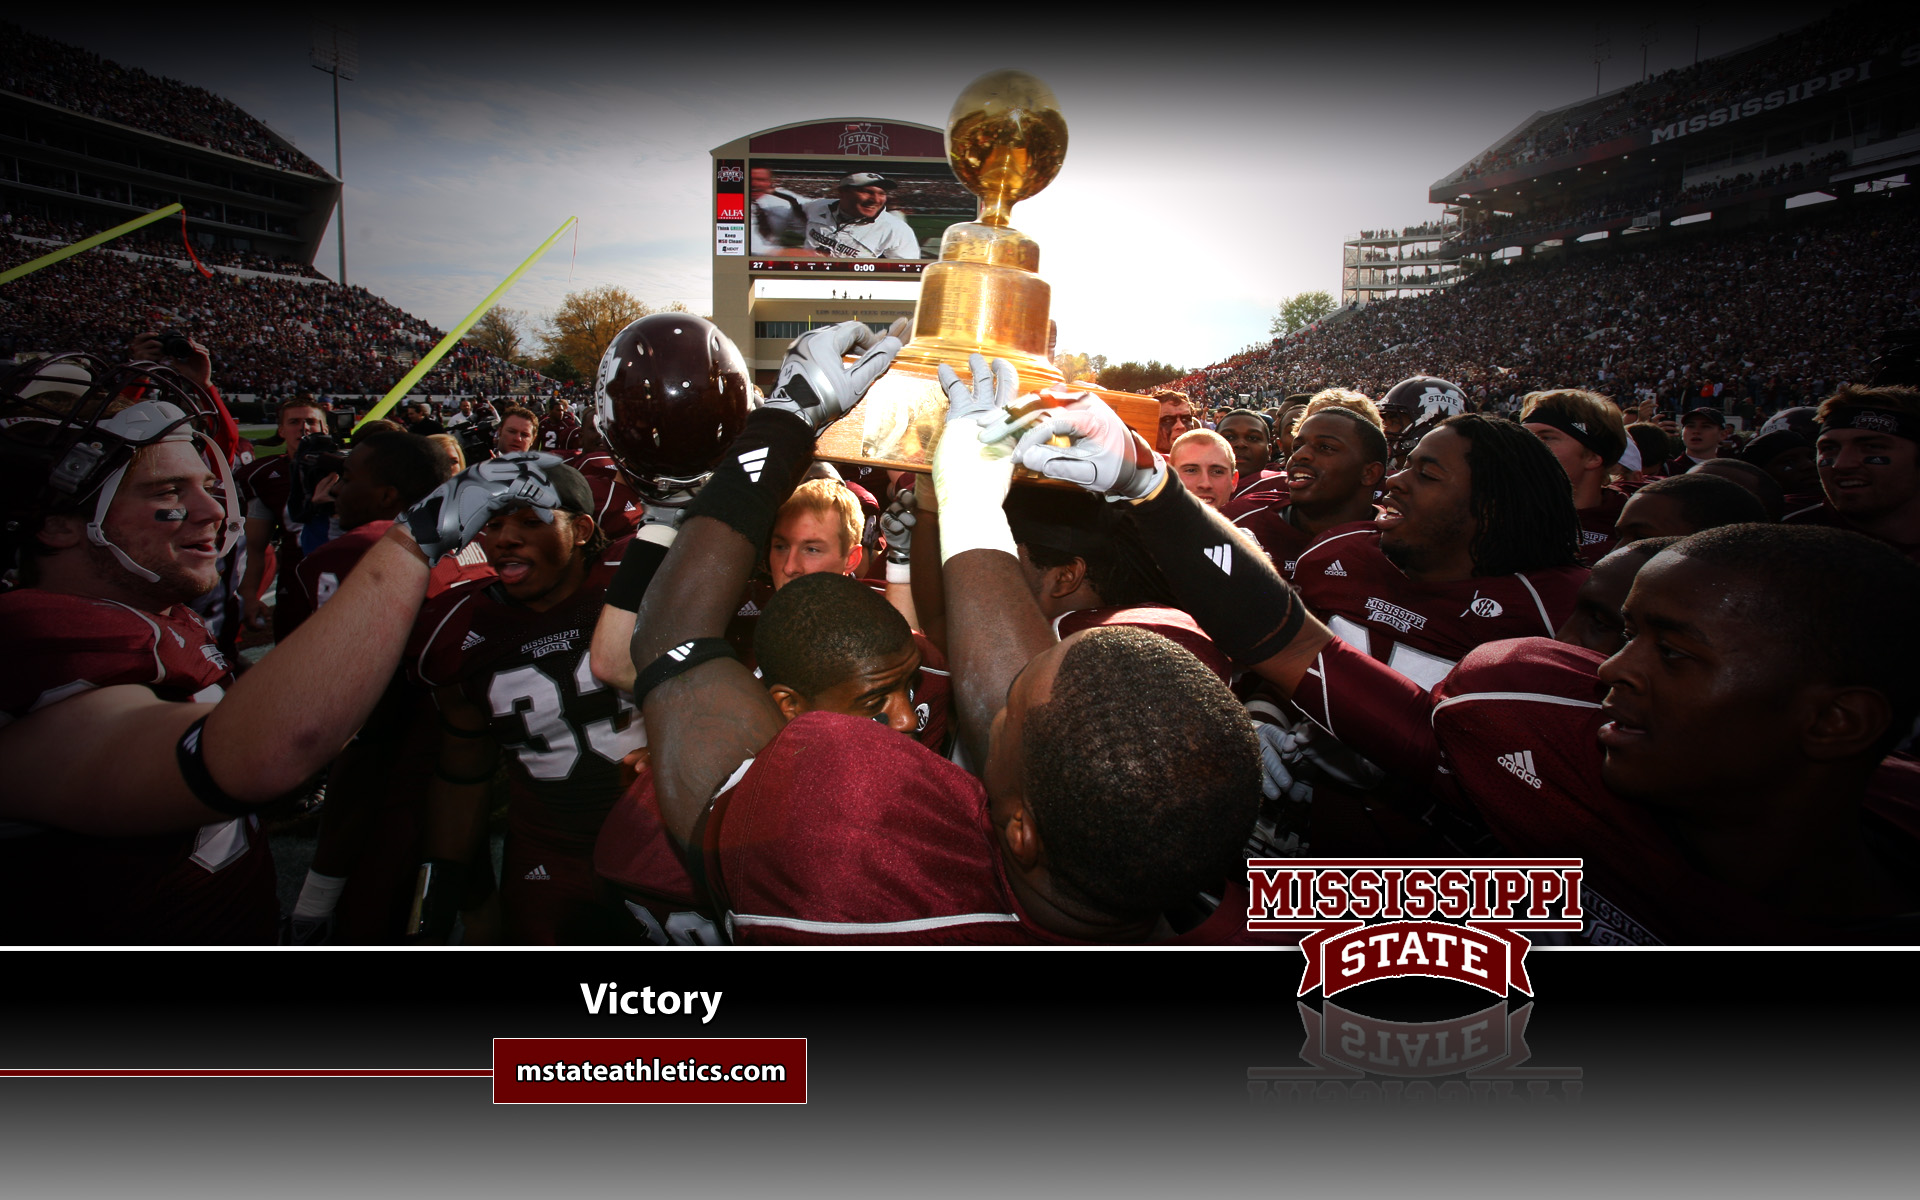 Mississippi State Credited 1920x1200